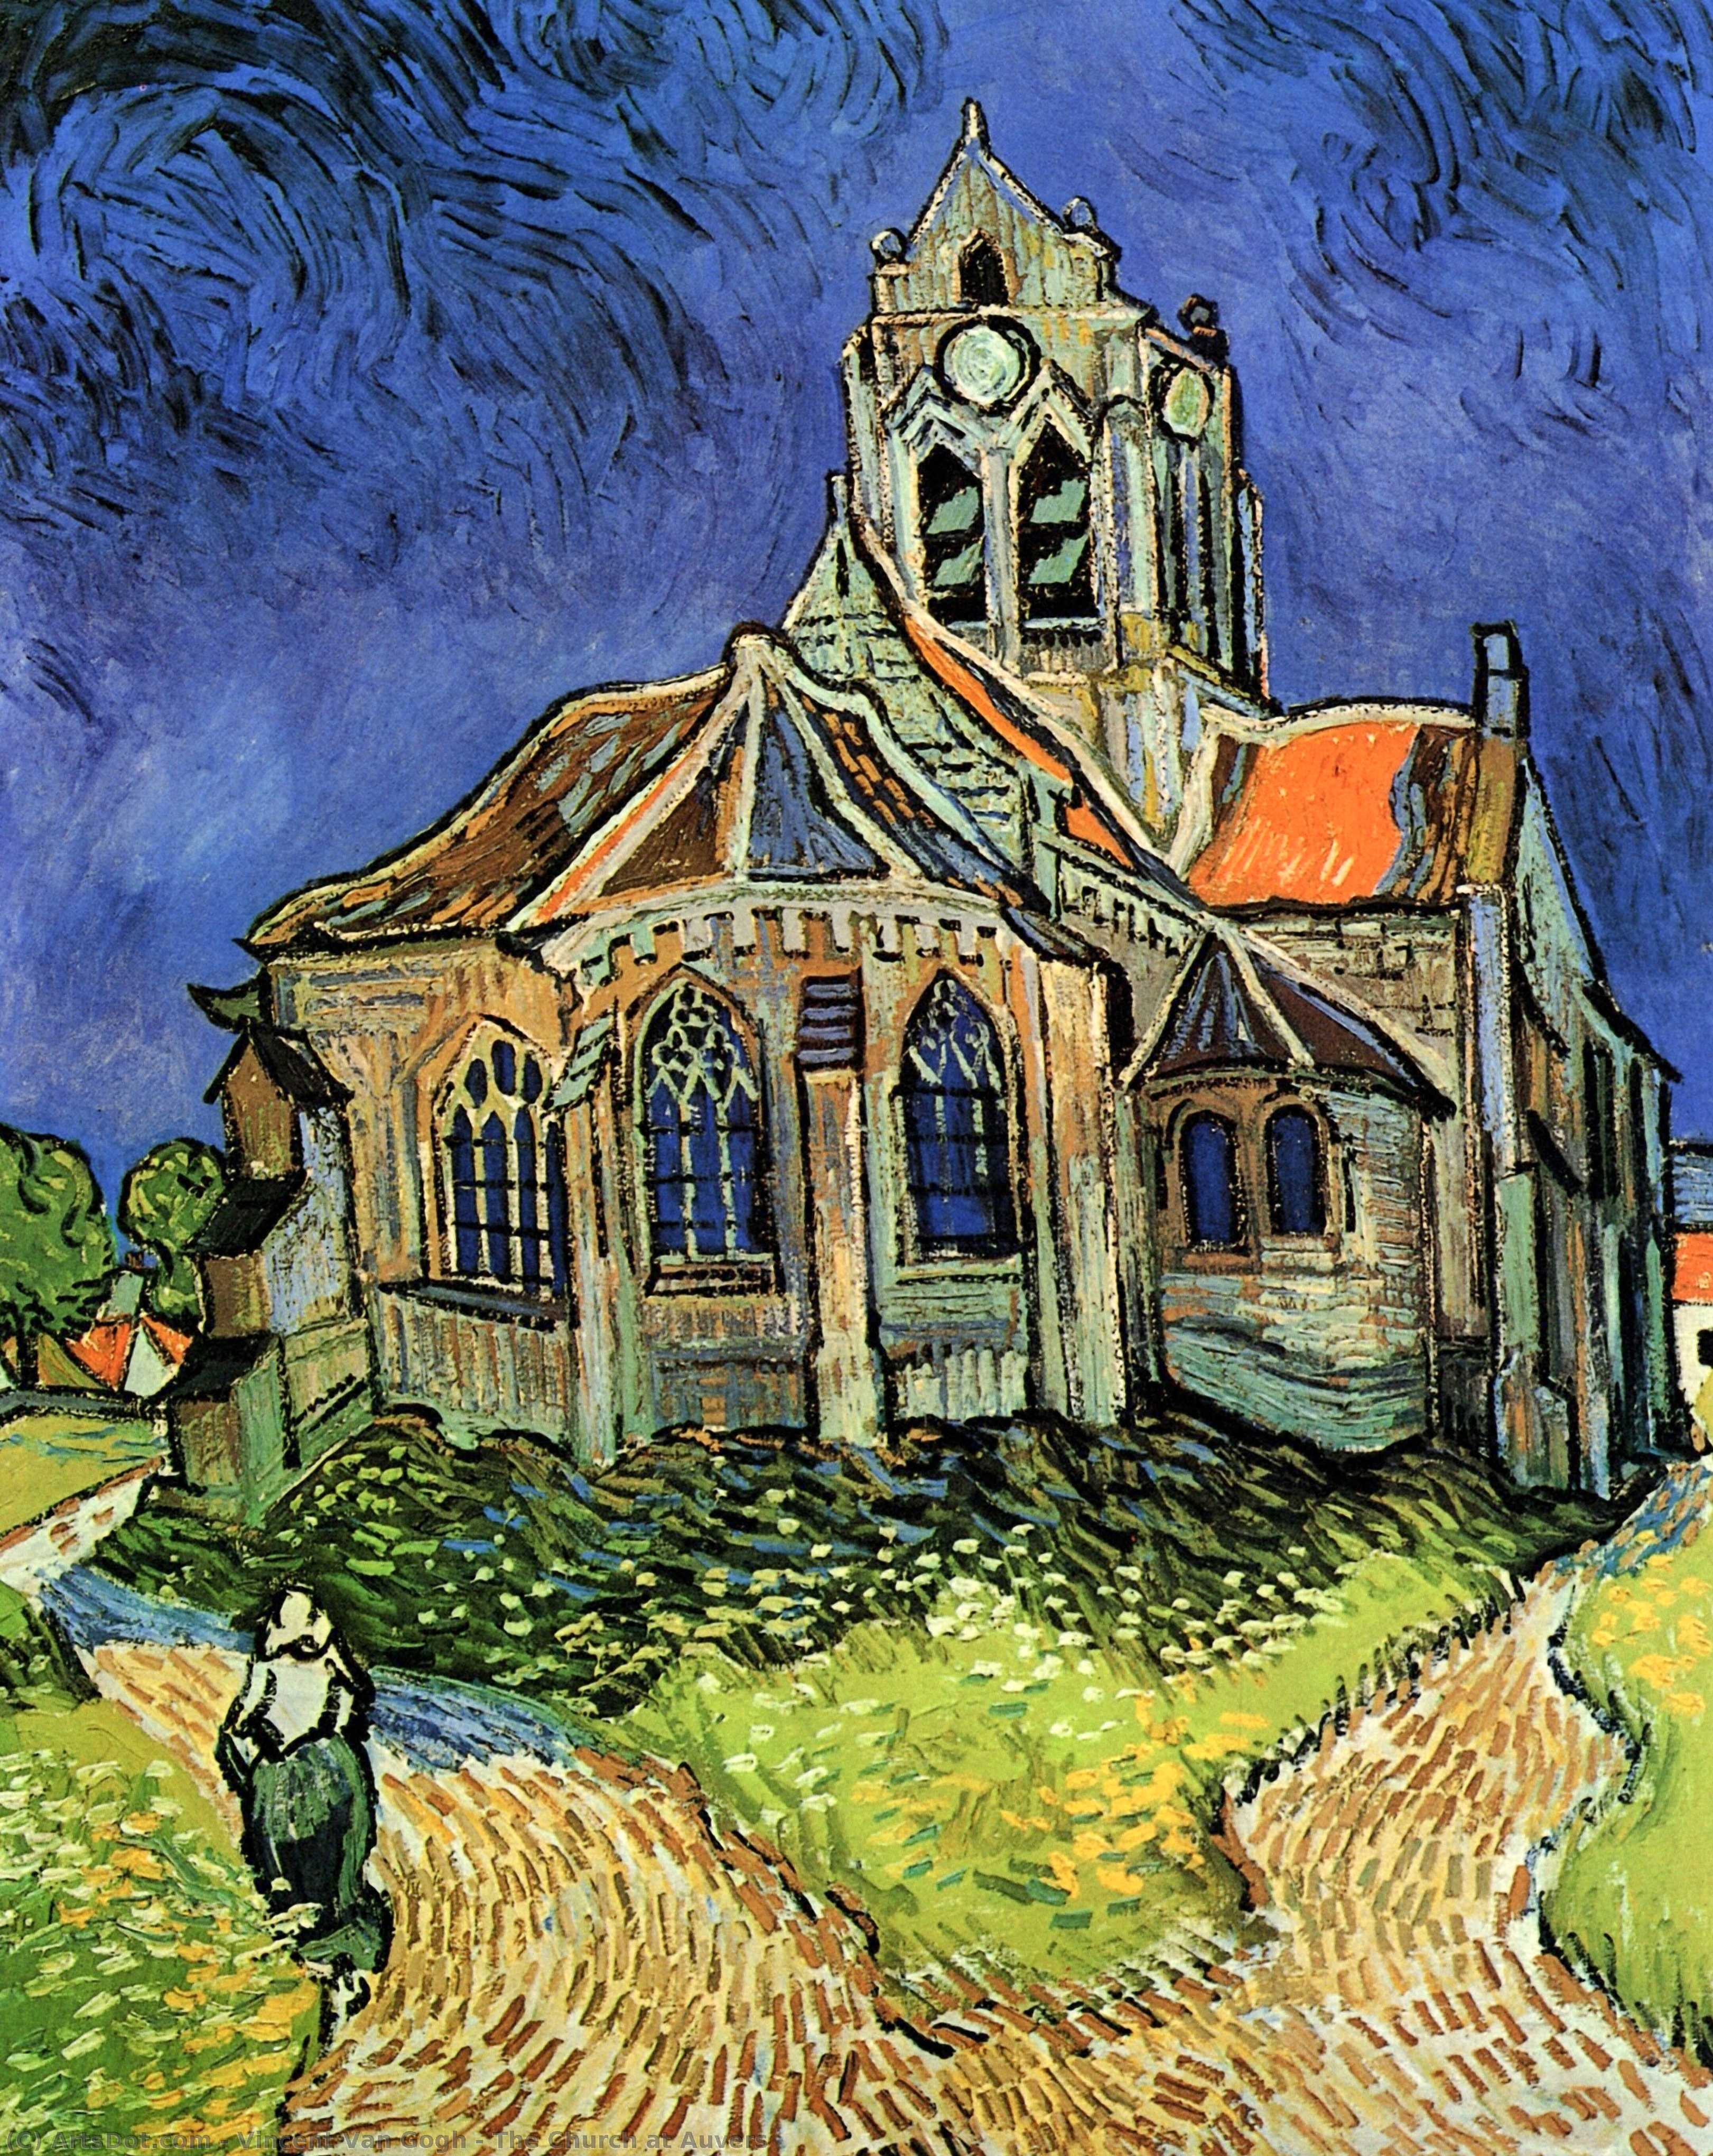 Wikioo.org - The Encyclopedia of Fine Arts - Painting, Artwork by Vincent Van Gogh - The Church at Auvers